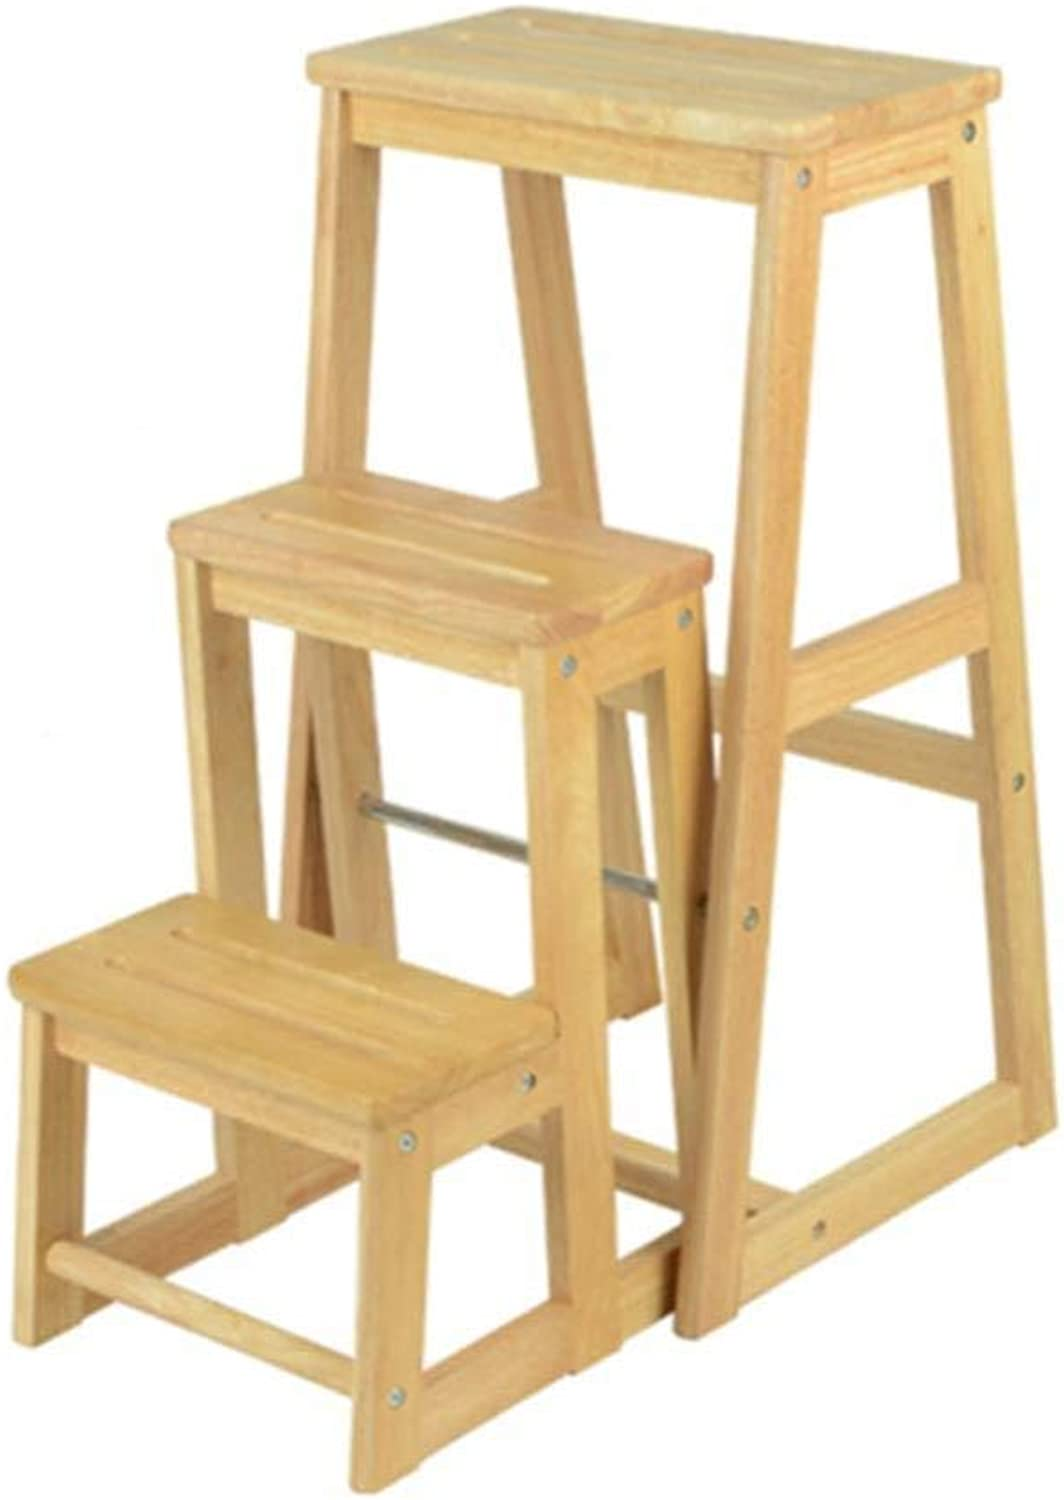 XITER Folding Ladder Stools Stairs Solid Wood Multifunction 3-step Bar Stool Change shoes Chair ladders (color   Wood color)